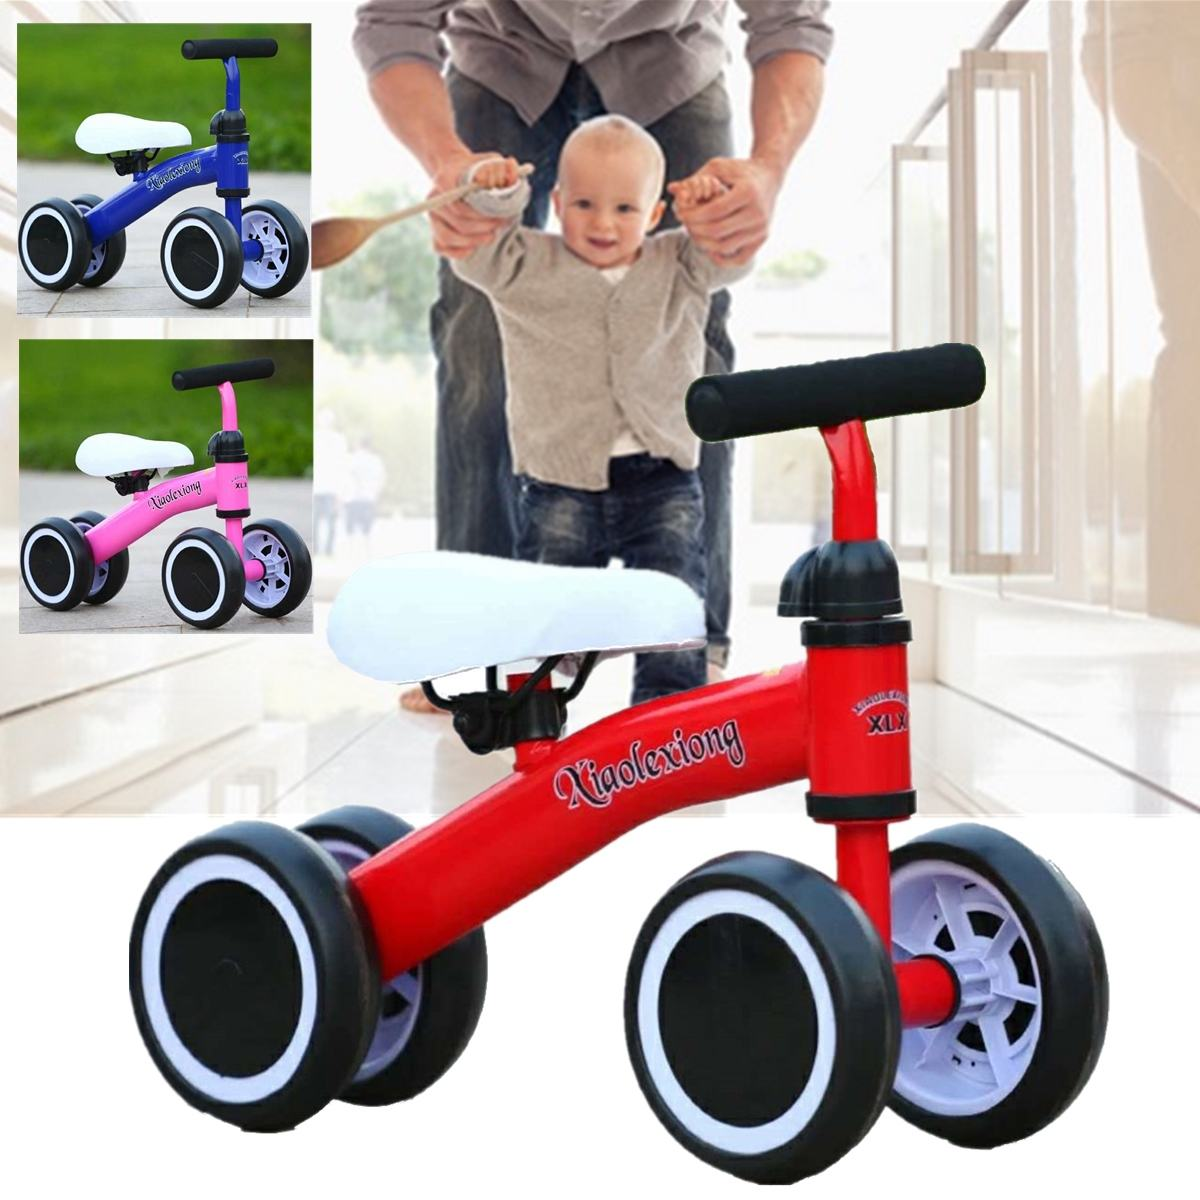 Children 3 wheel Balance Bike Kids Scooter Baby Walker Tricycle Bike Ride On Toys Gift for Baby toys Balance Bikes ScooterChildren 3 wheel Balance Bike Kids Scooter Baby Walker Tricycle Bike Ride On Toys Gift for Baby toys Balance Bikes Scooter